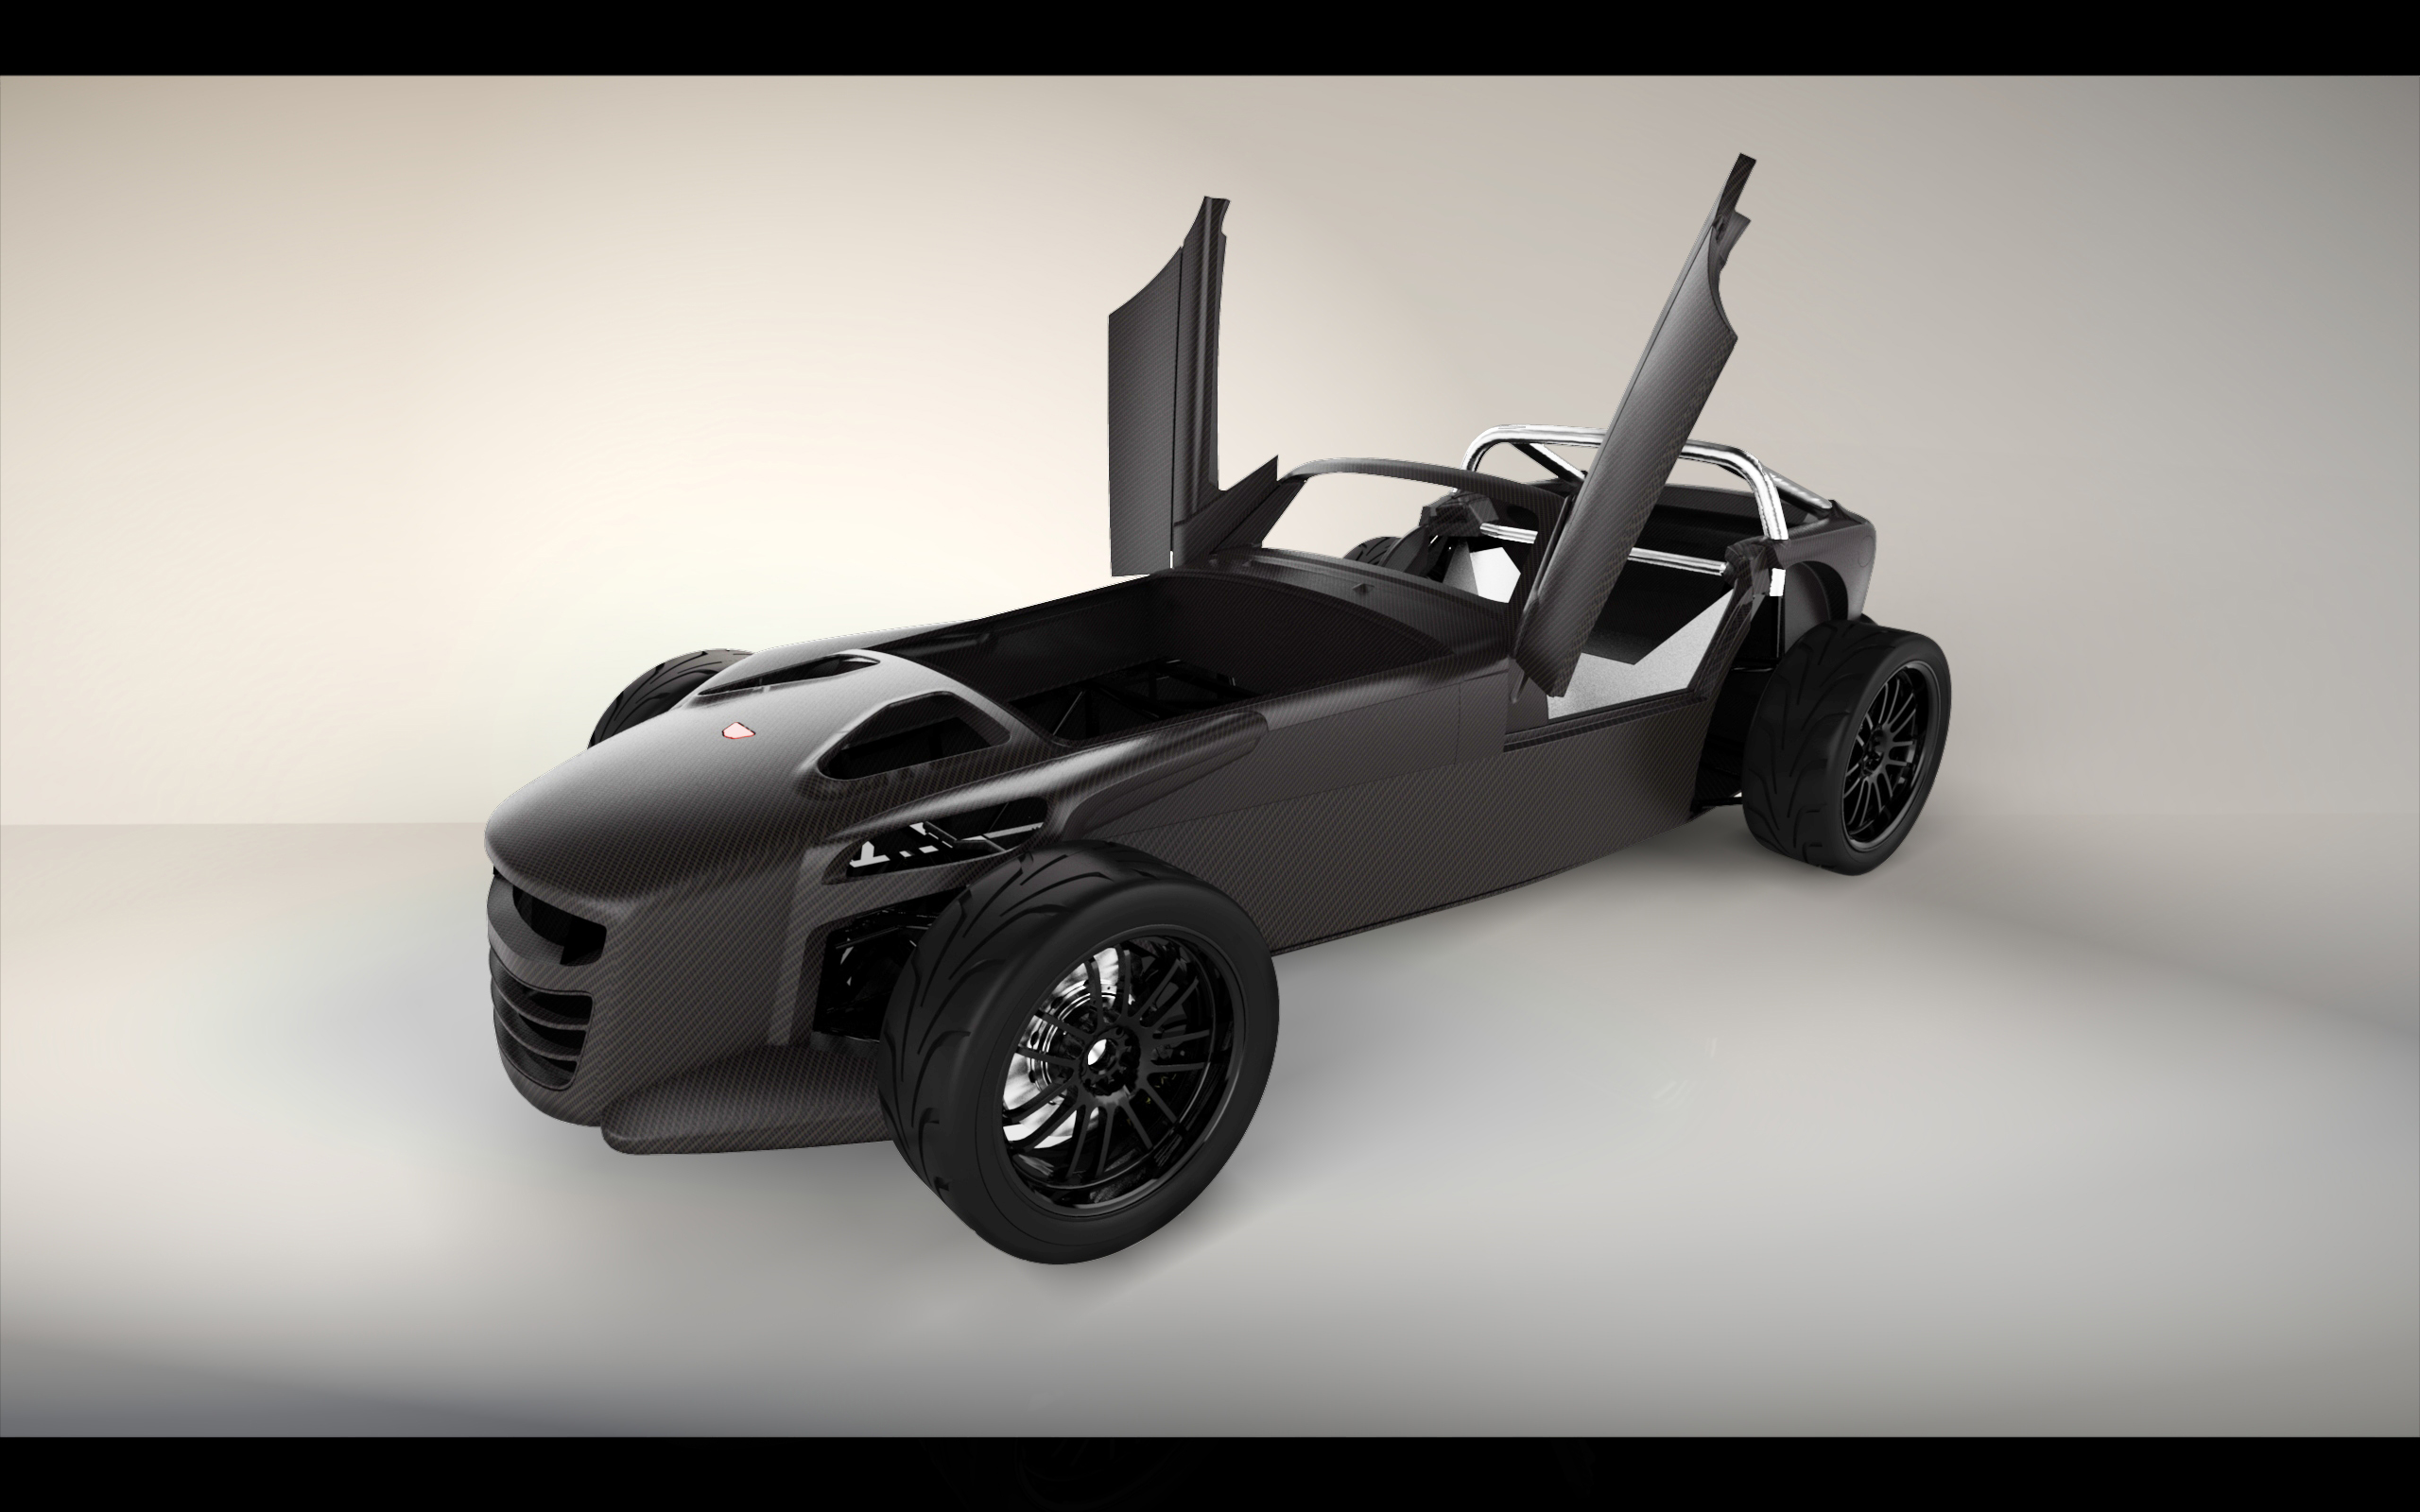 2012 – The Year of the Sports Car Comeback?